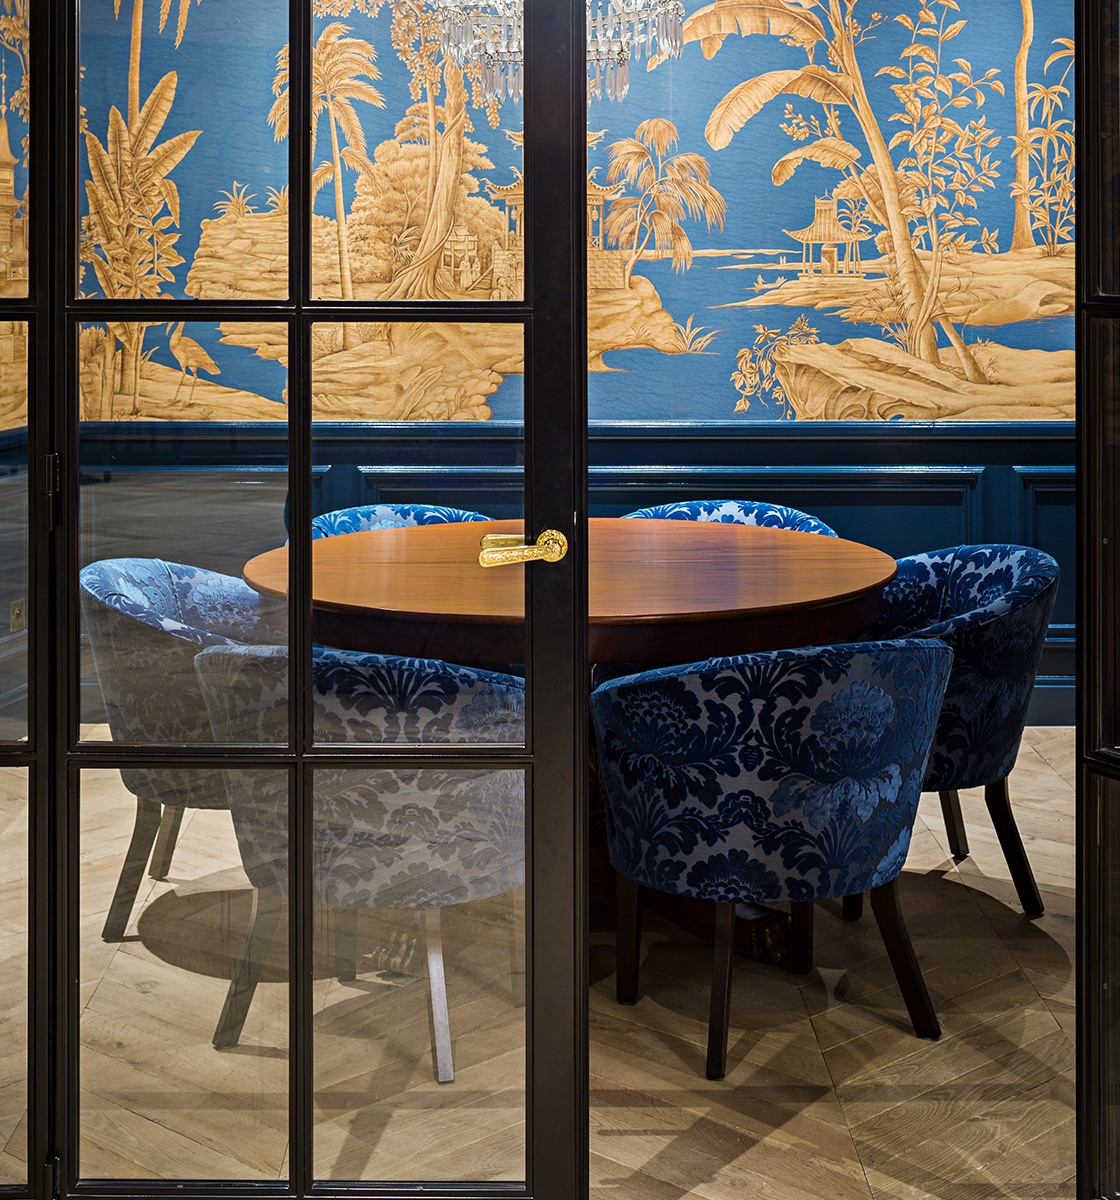 6 Dining chairs in Japanese inspired room tucked into table